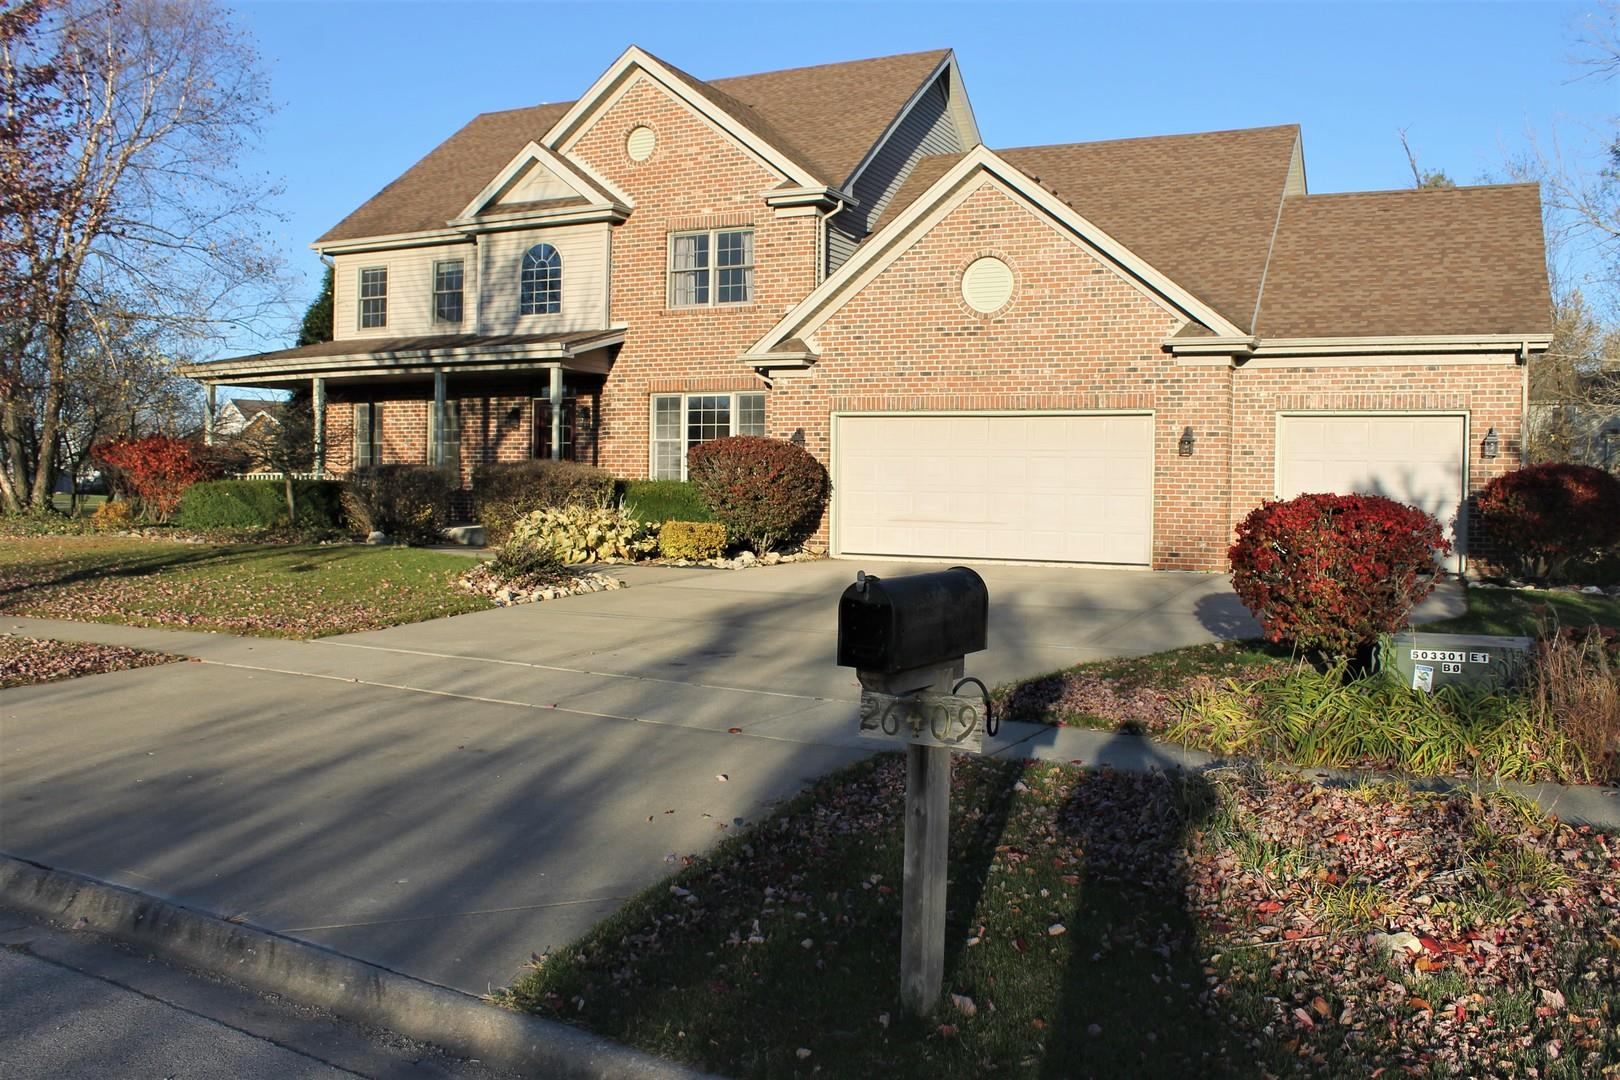 26409 S Evergreen Lane, Channahon, IL 60410 - #: 10924443